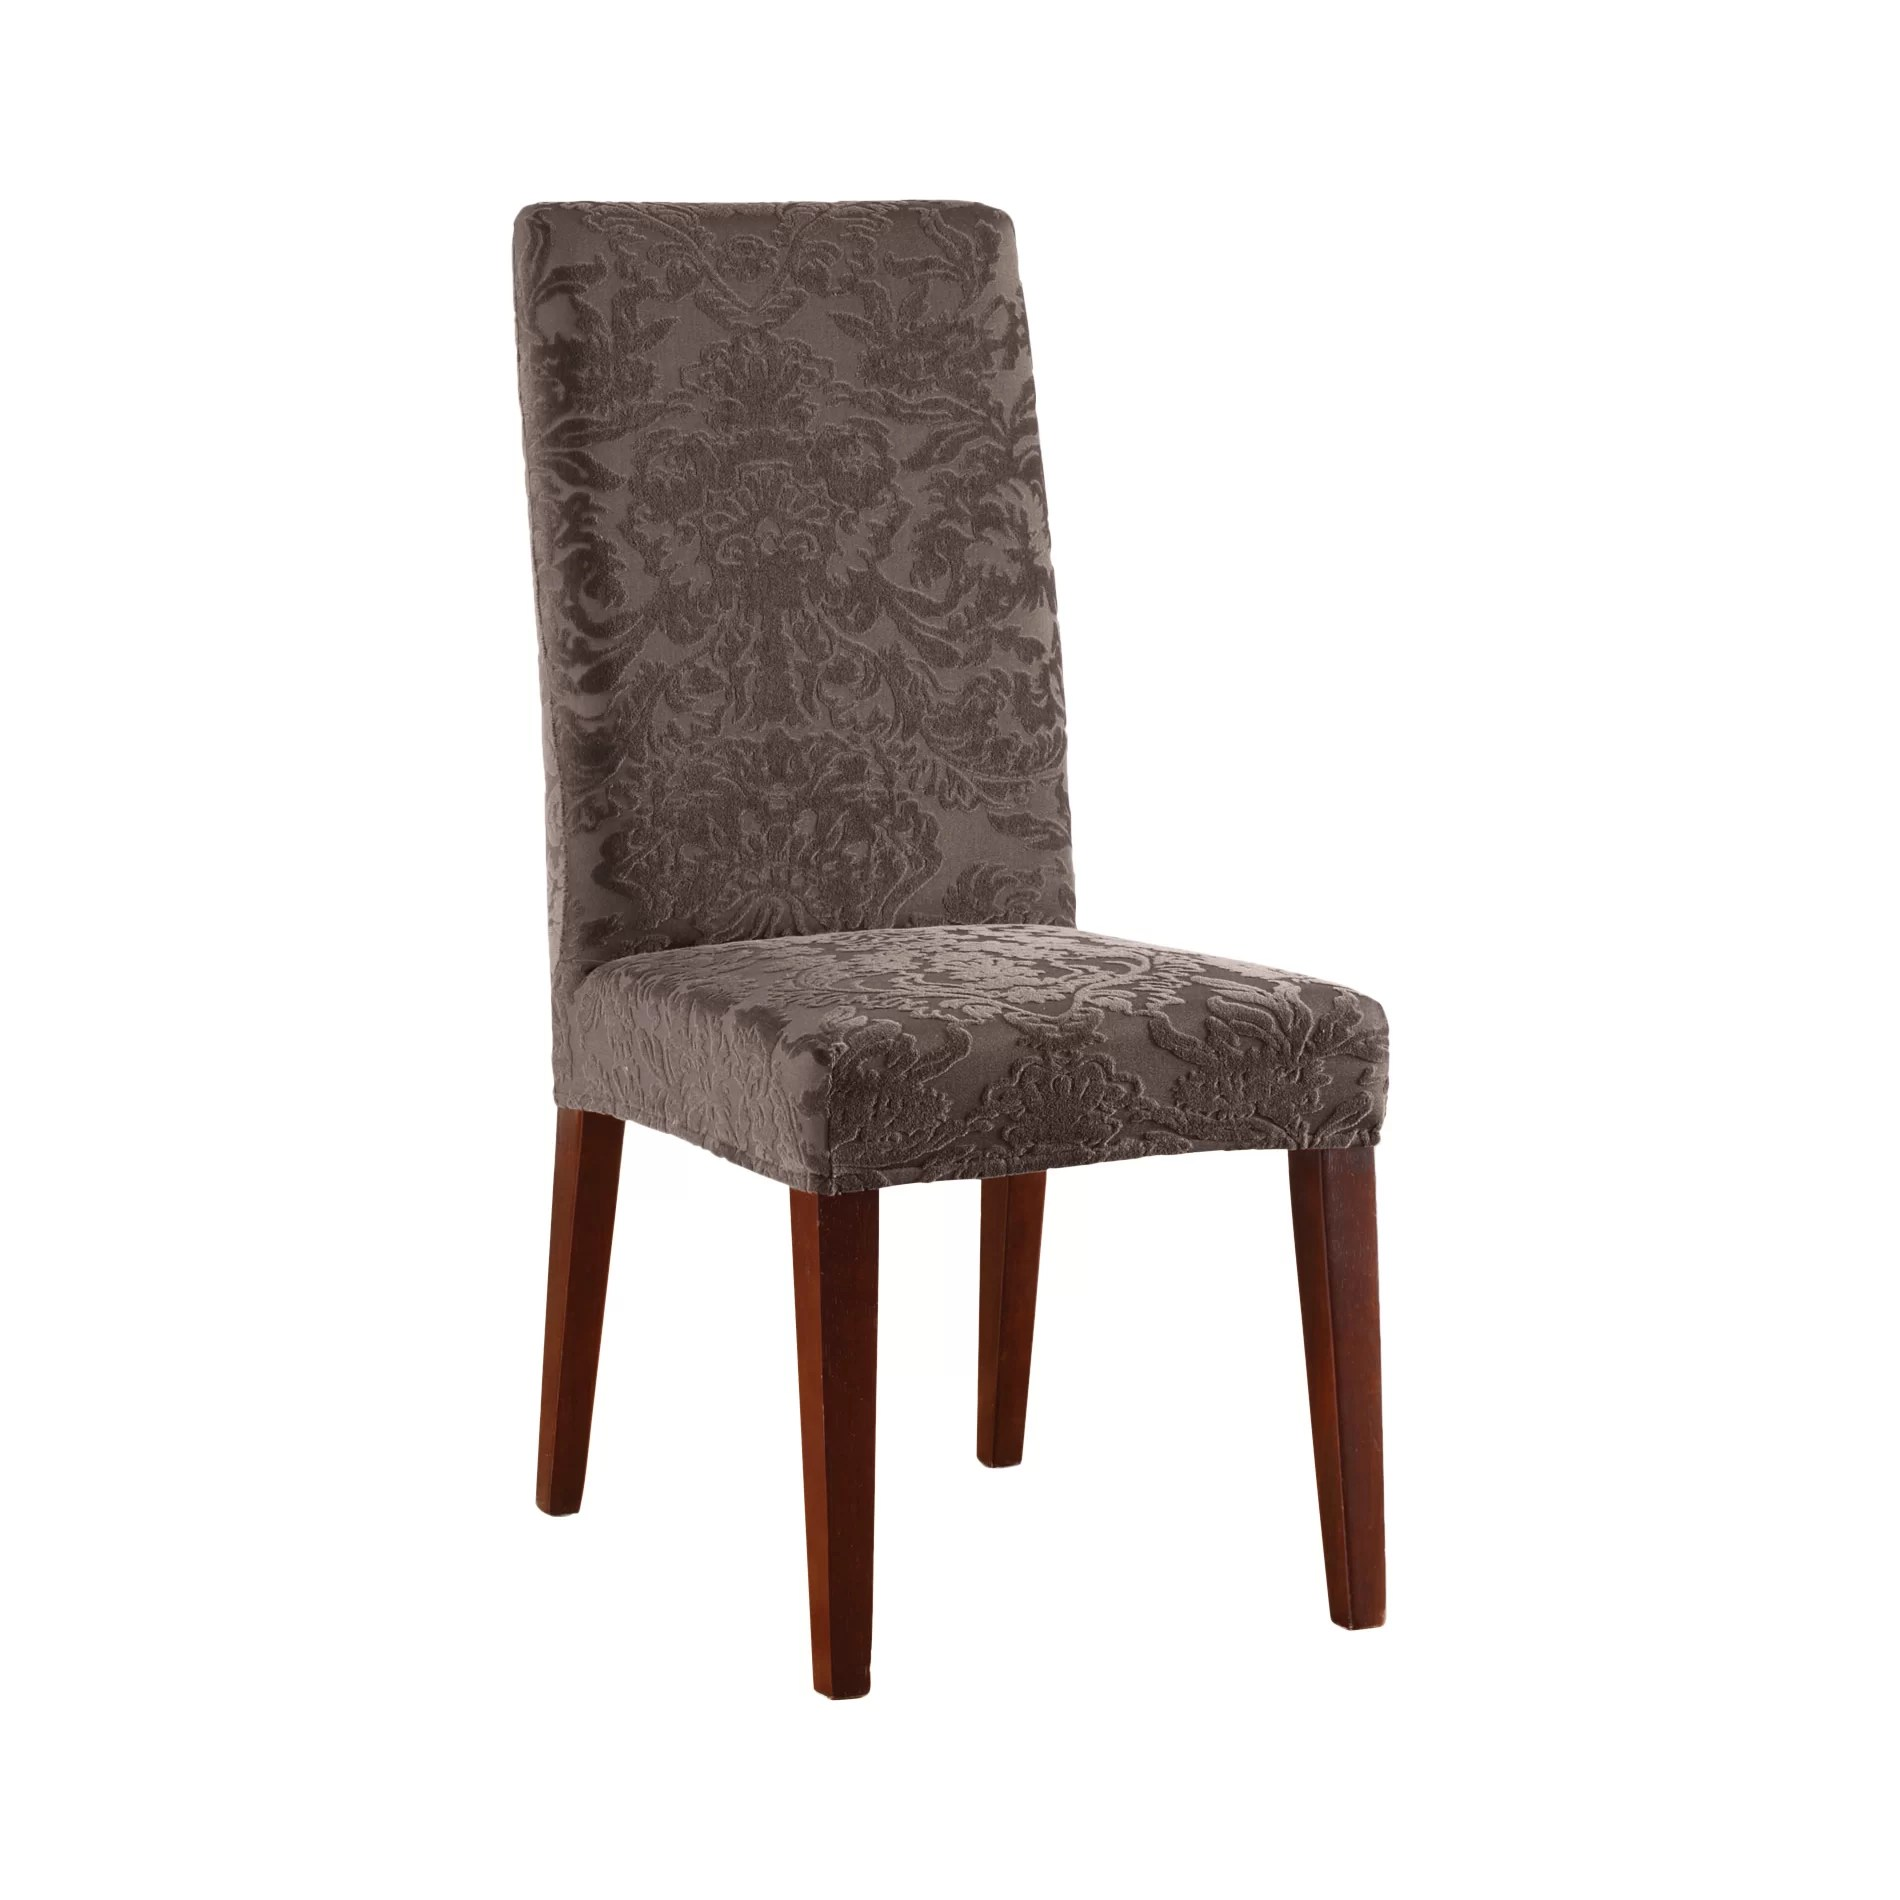 Stretching Chair Sure Fit Stretch Jacquard Damask Dining Chair Slipcover Ebay